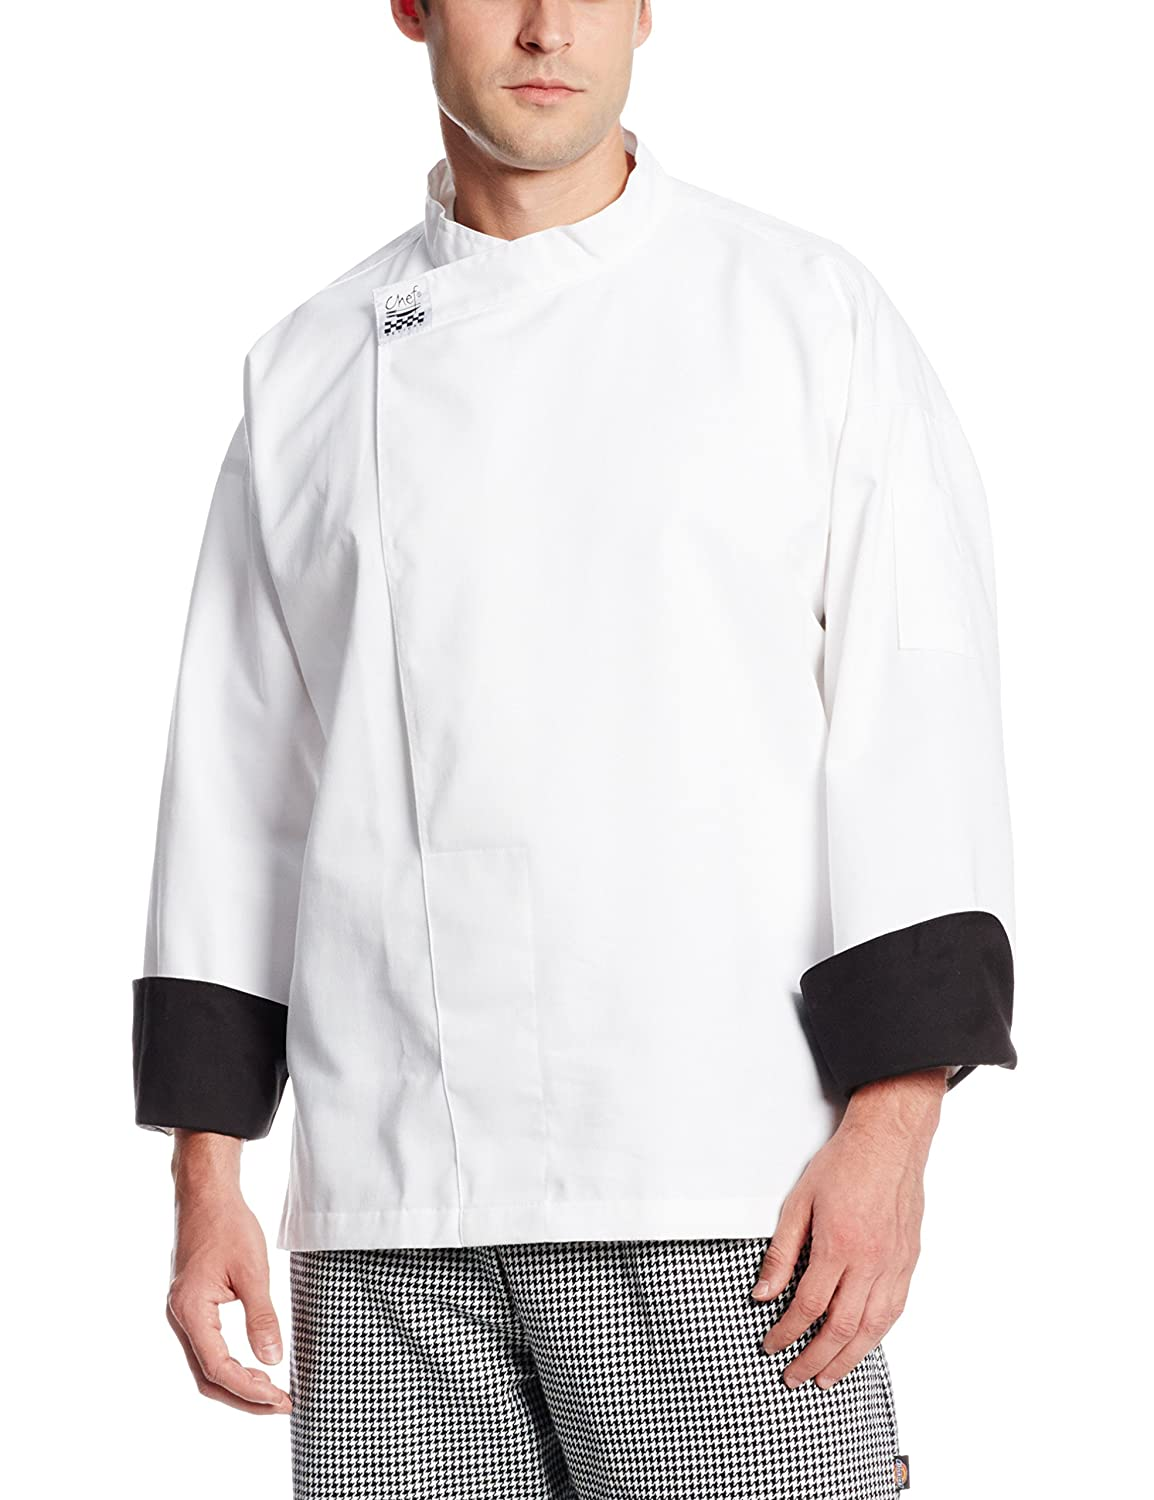 Chef Revival T001 Chef-Tex Poly Cotton Executive Long Sleeve Pullover Chef Tunic with Black Cuffs and Hidden Snap Closure, 3X-Large, White San Jamar T001-3X